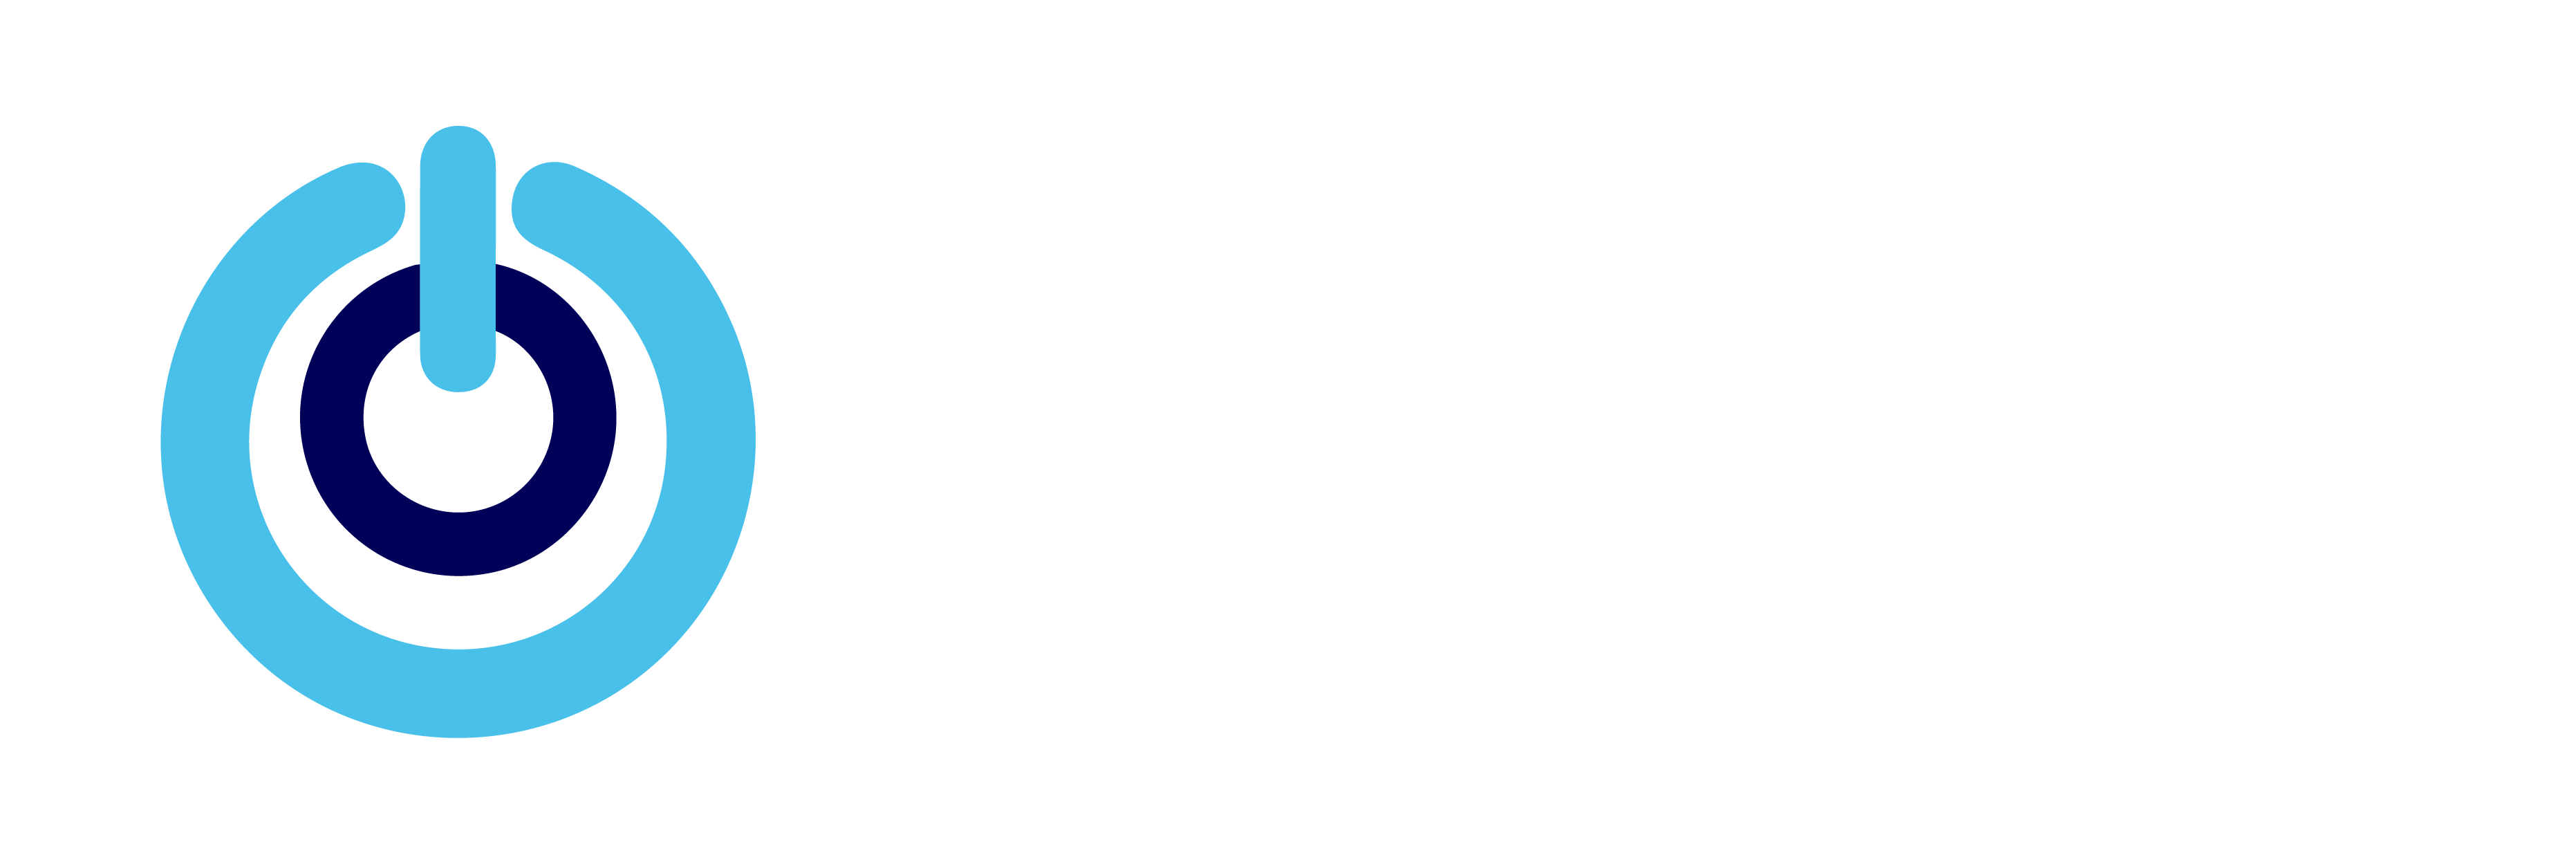 Complete Automation Resource